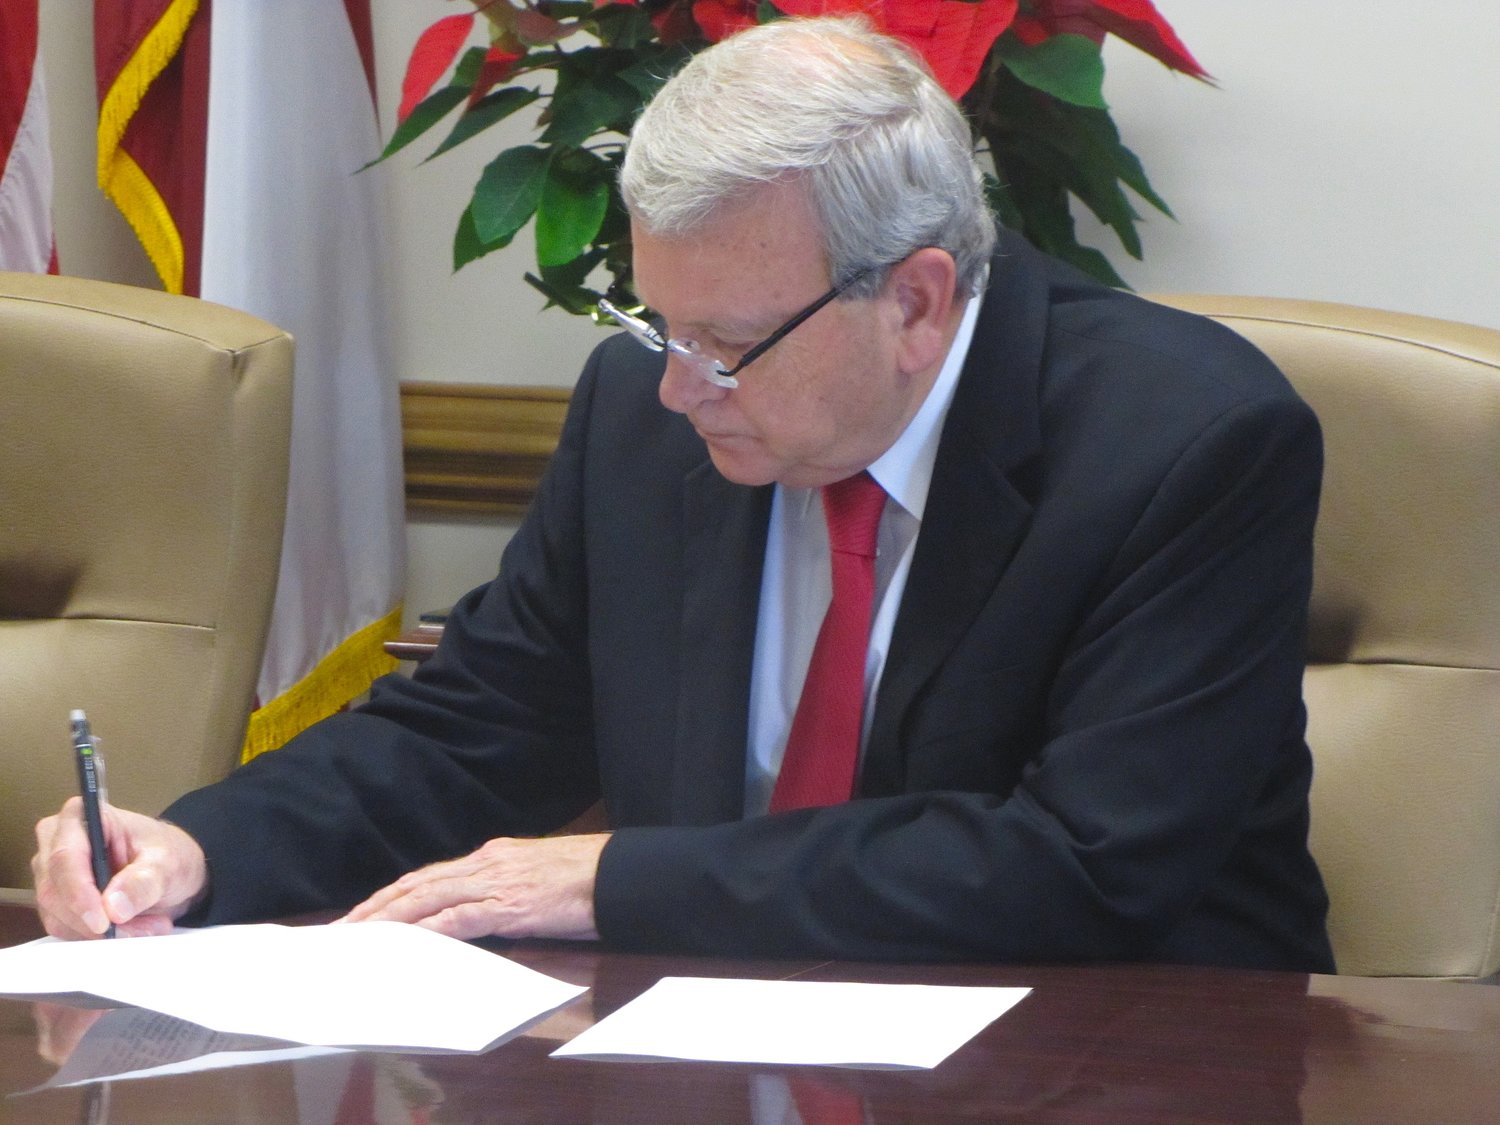 Bartow County Commissioner Steve Taylor inks documents at Wednesday's public meeting. Among other items, he approved the creation of the Etowah-Allatoona Economic Corridor, which includes 32 parcels in and around Emerson.